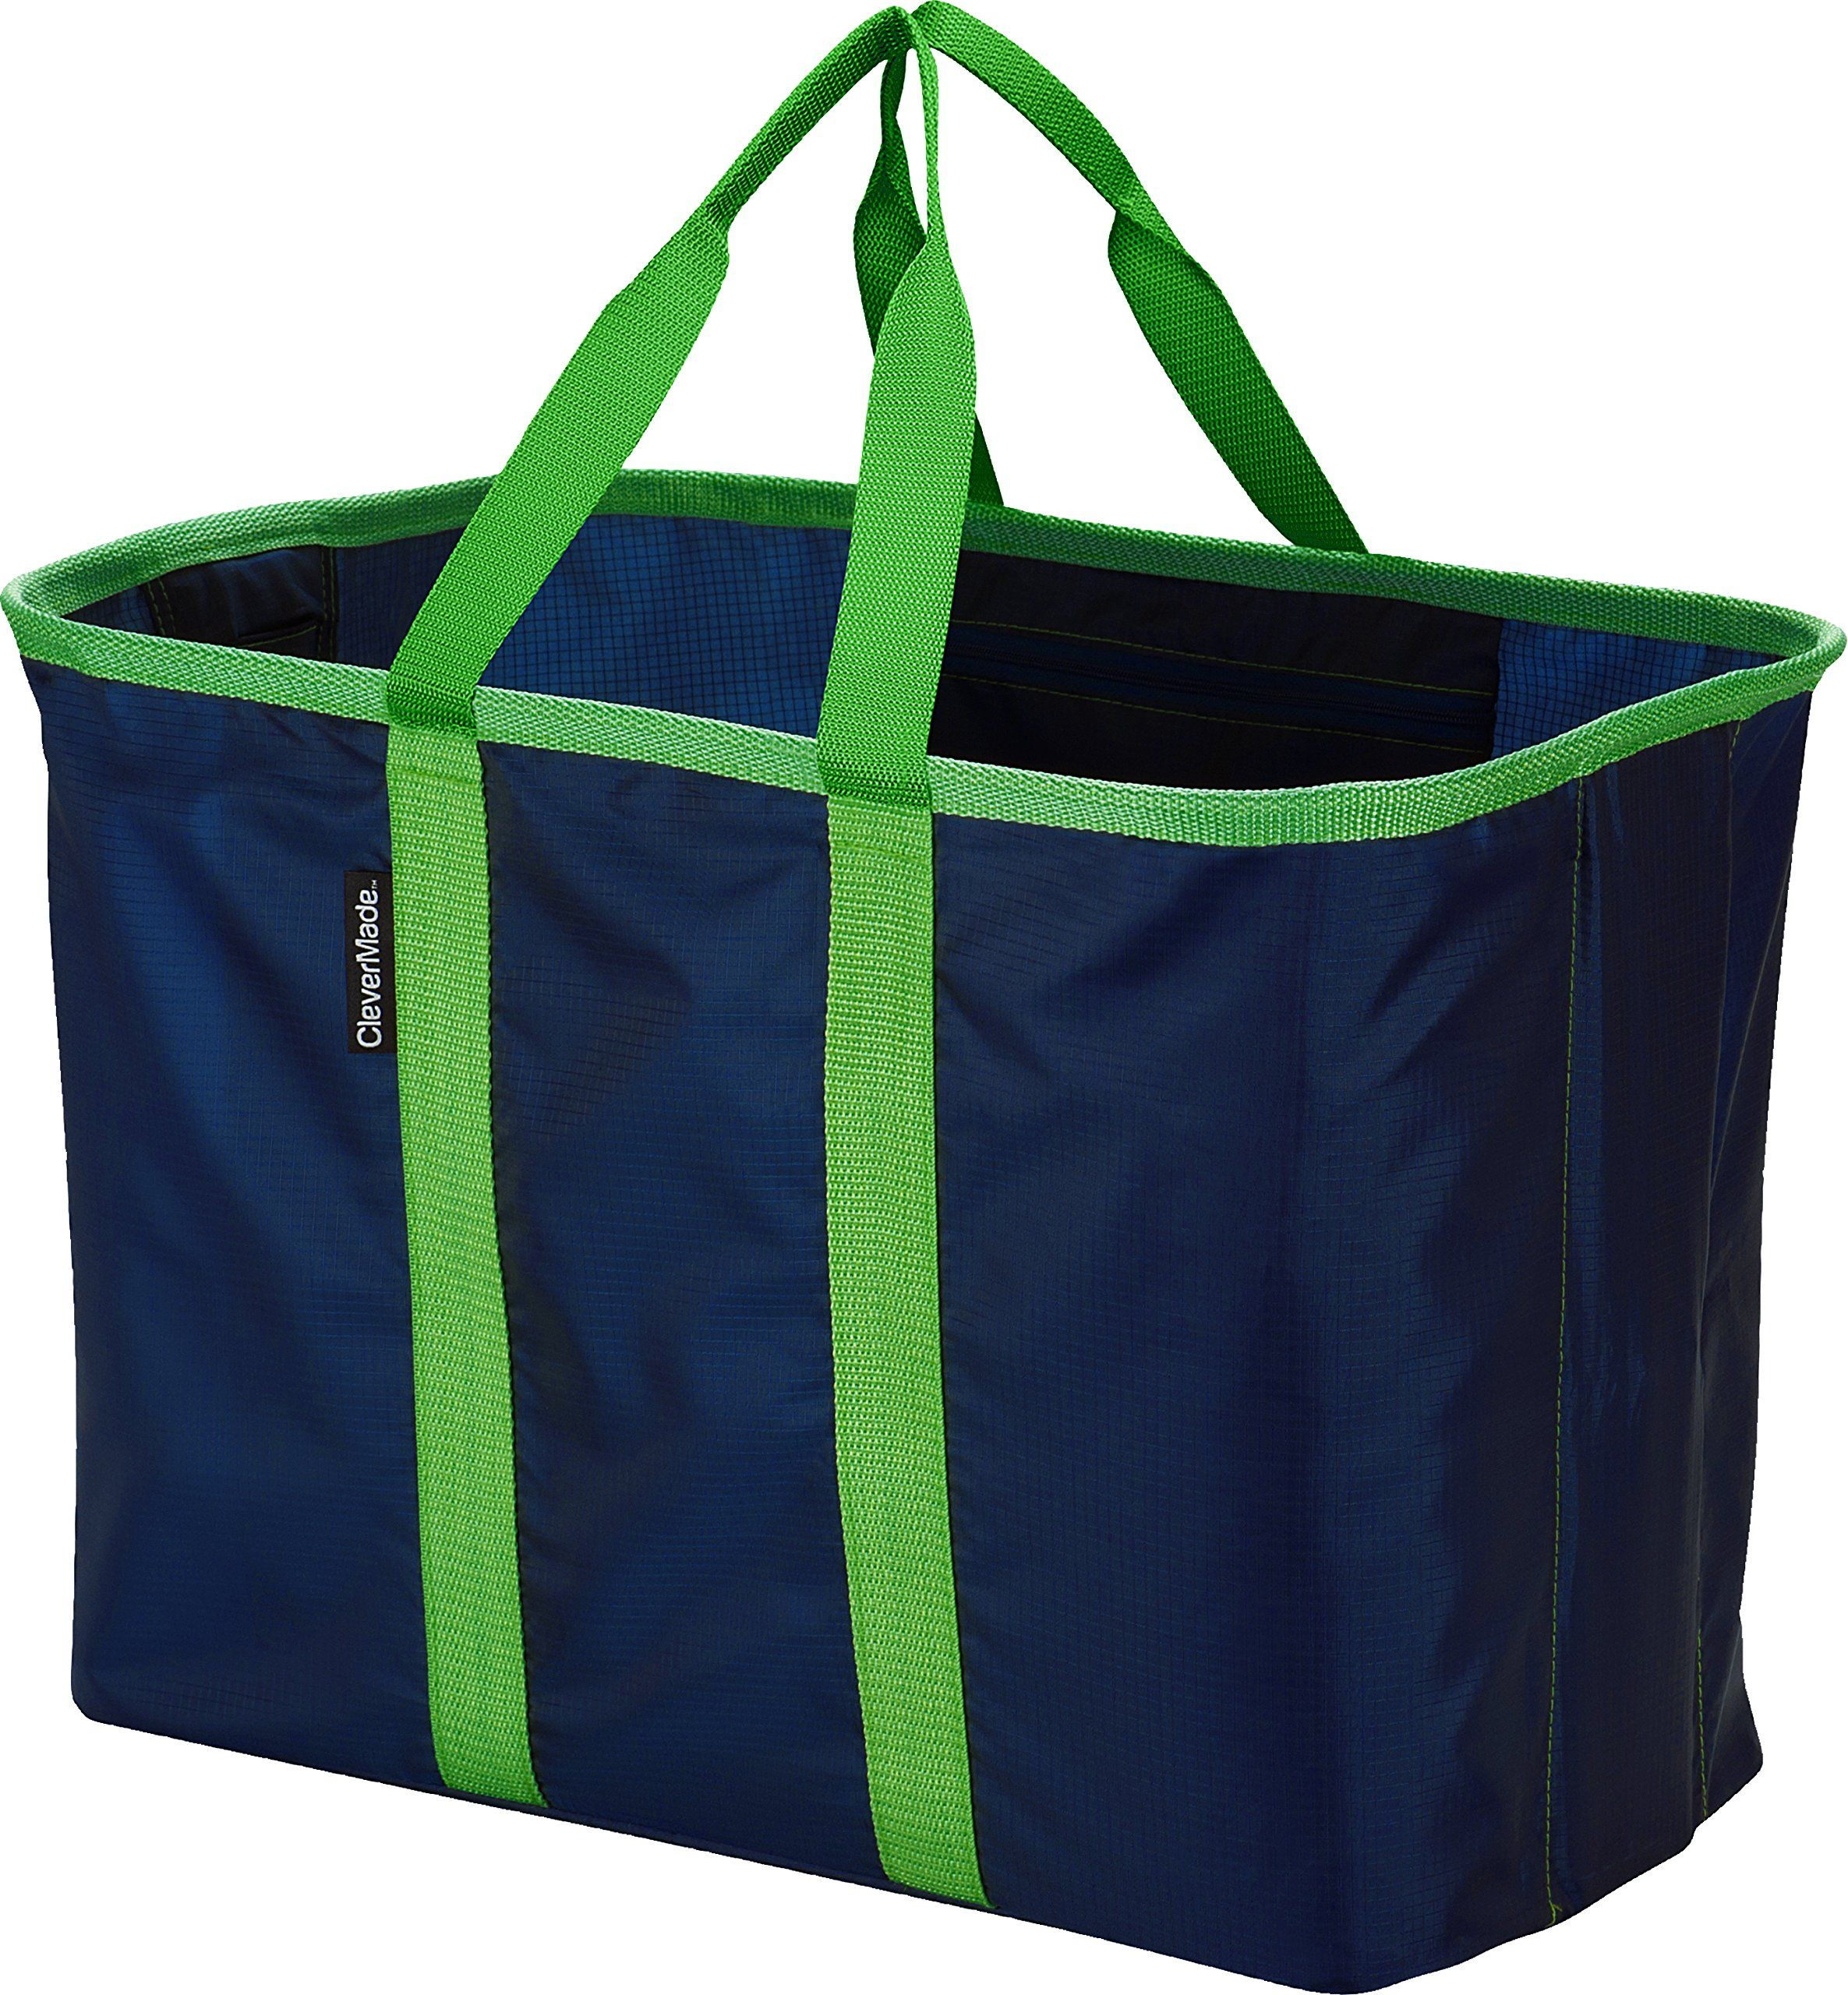 Clevermade Snapbasket Xl 40 Liter Reusable Tote Bag With